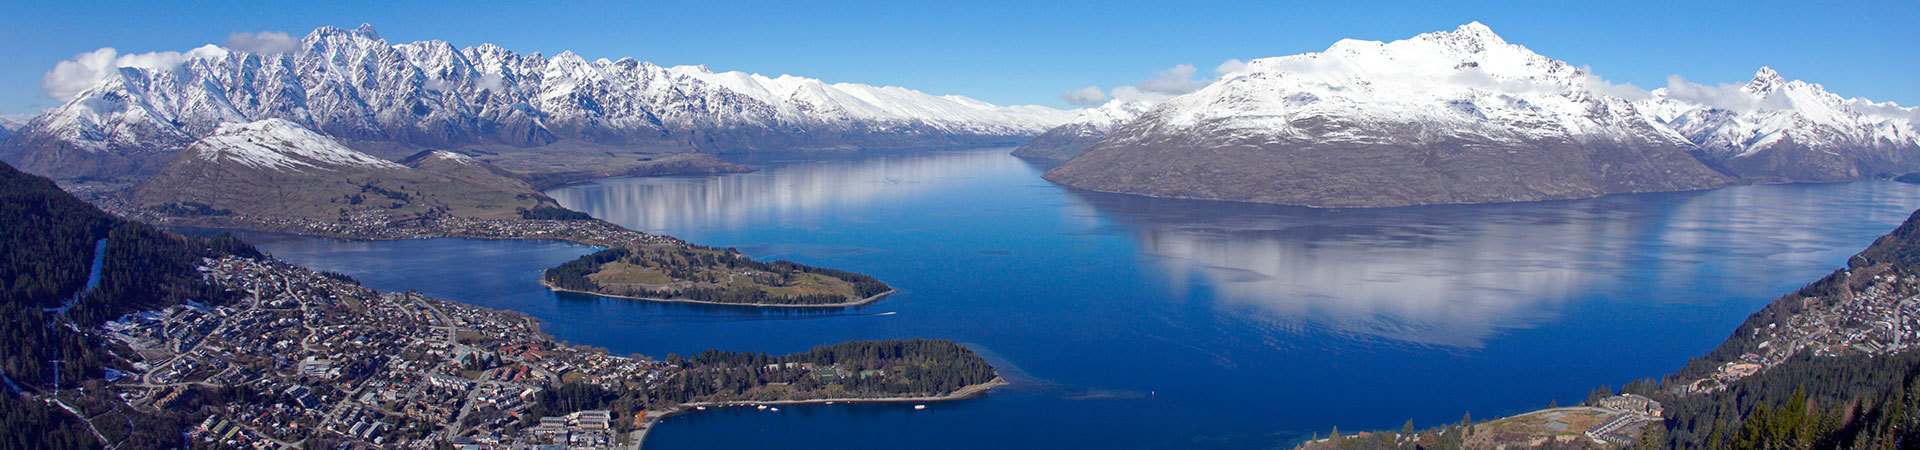 Lake Wakatipu | Queenstown